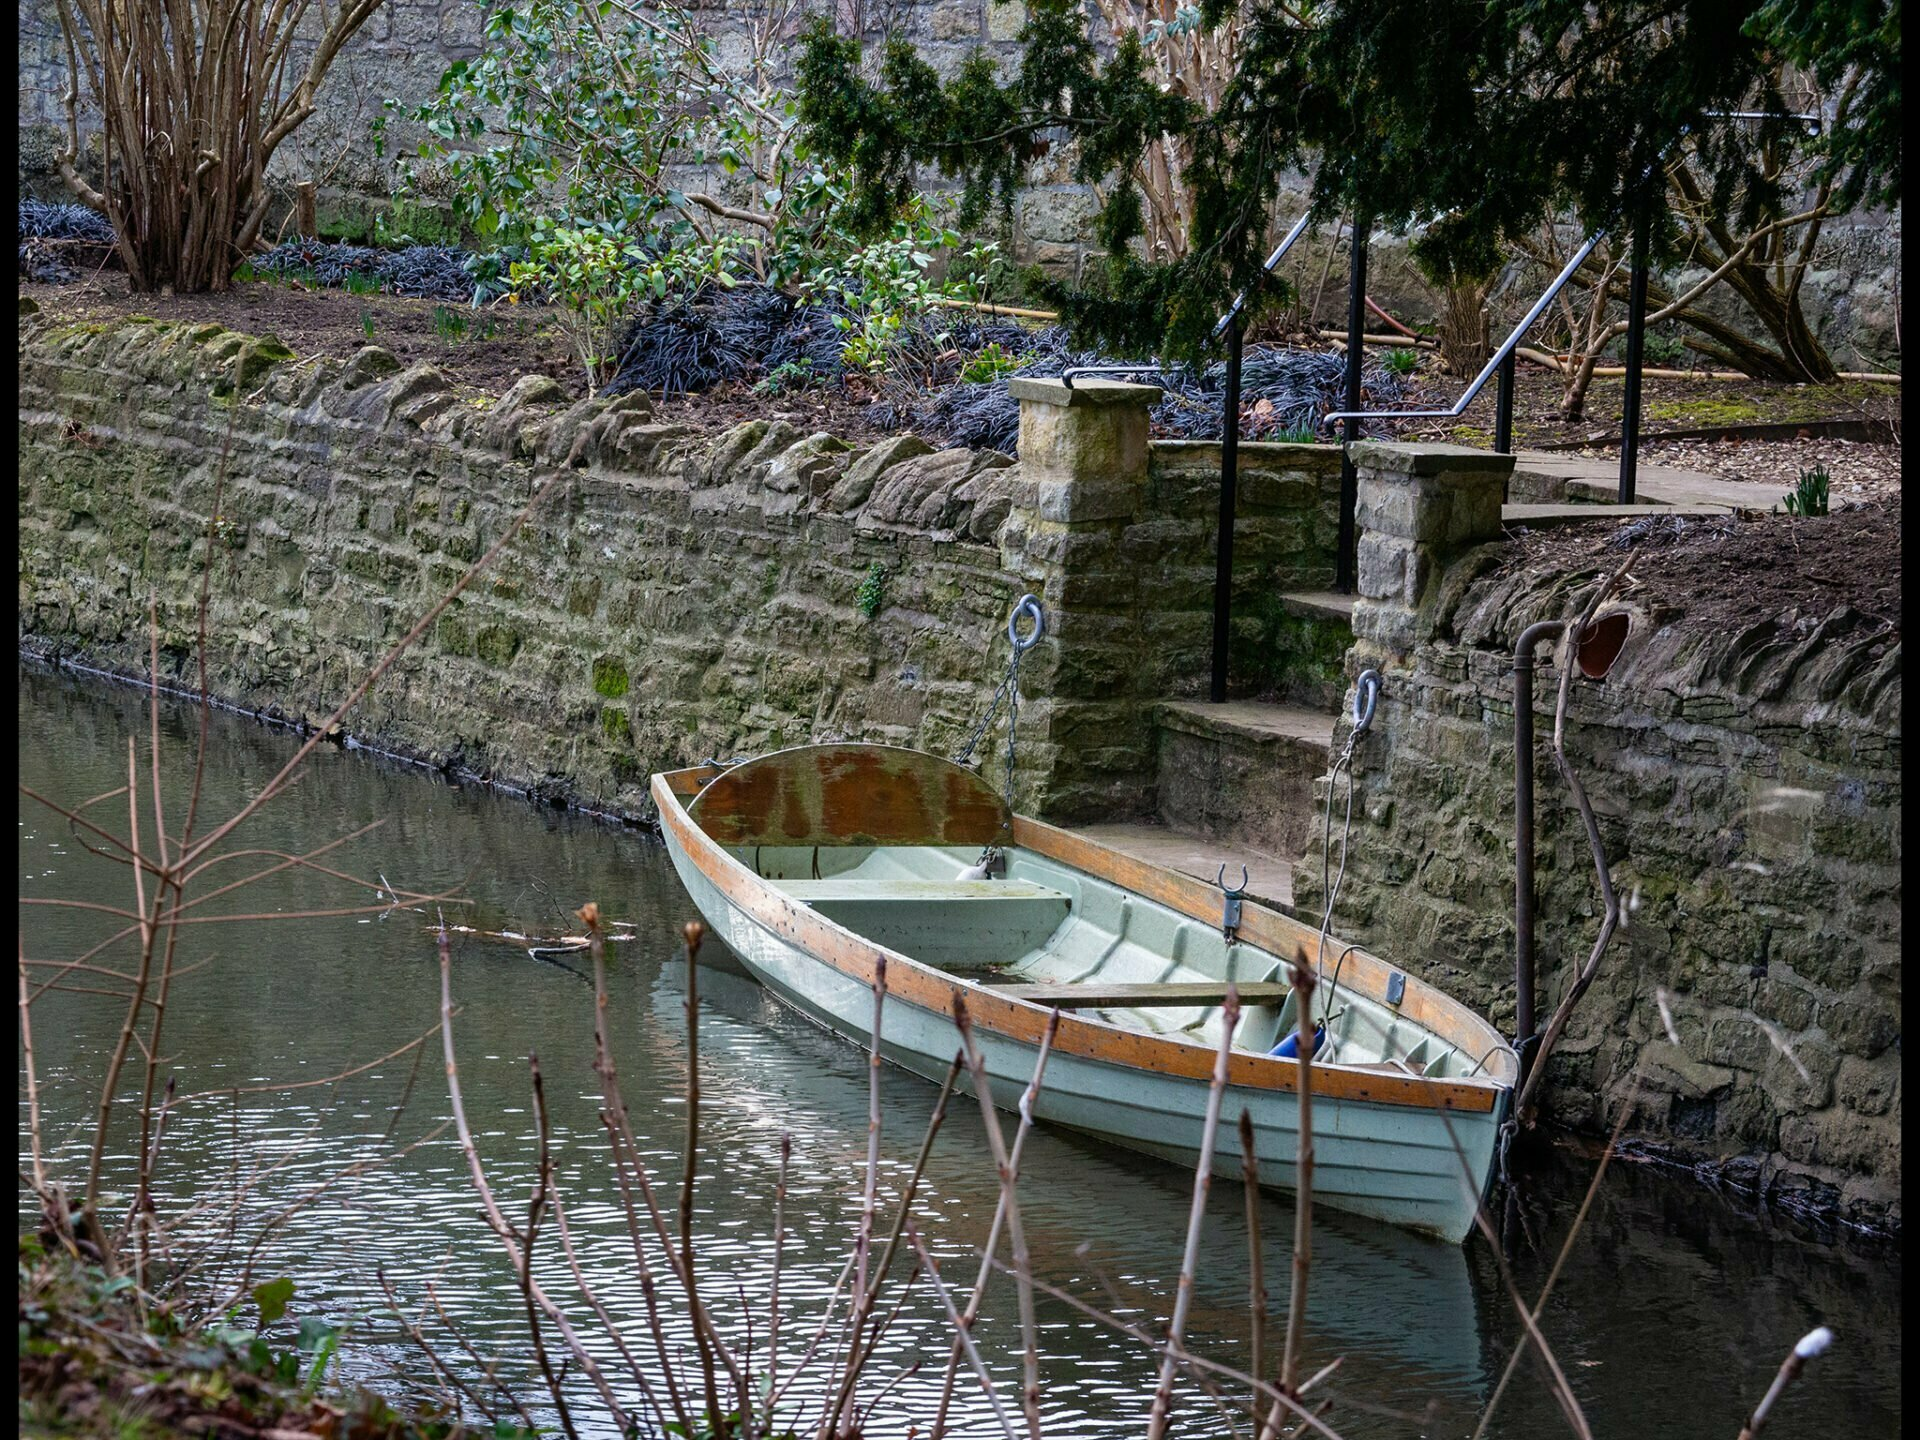 An old fashioned rowboat moored by some steps at Magdelen College